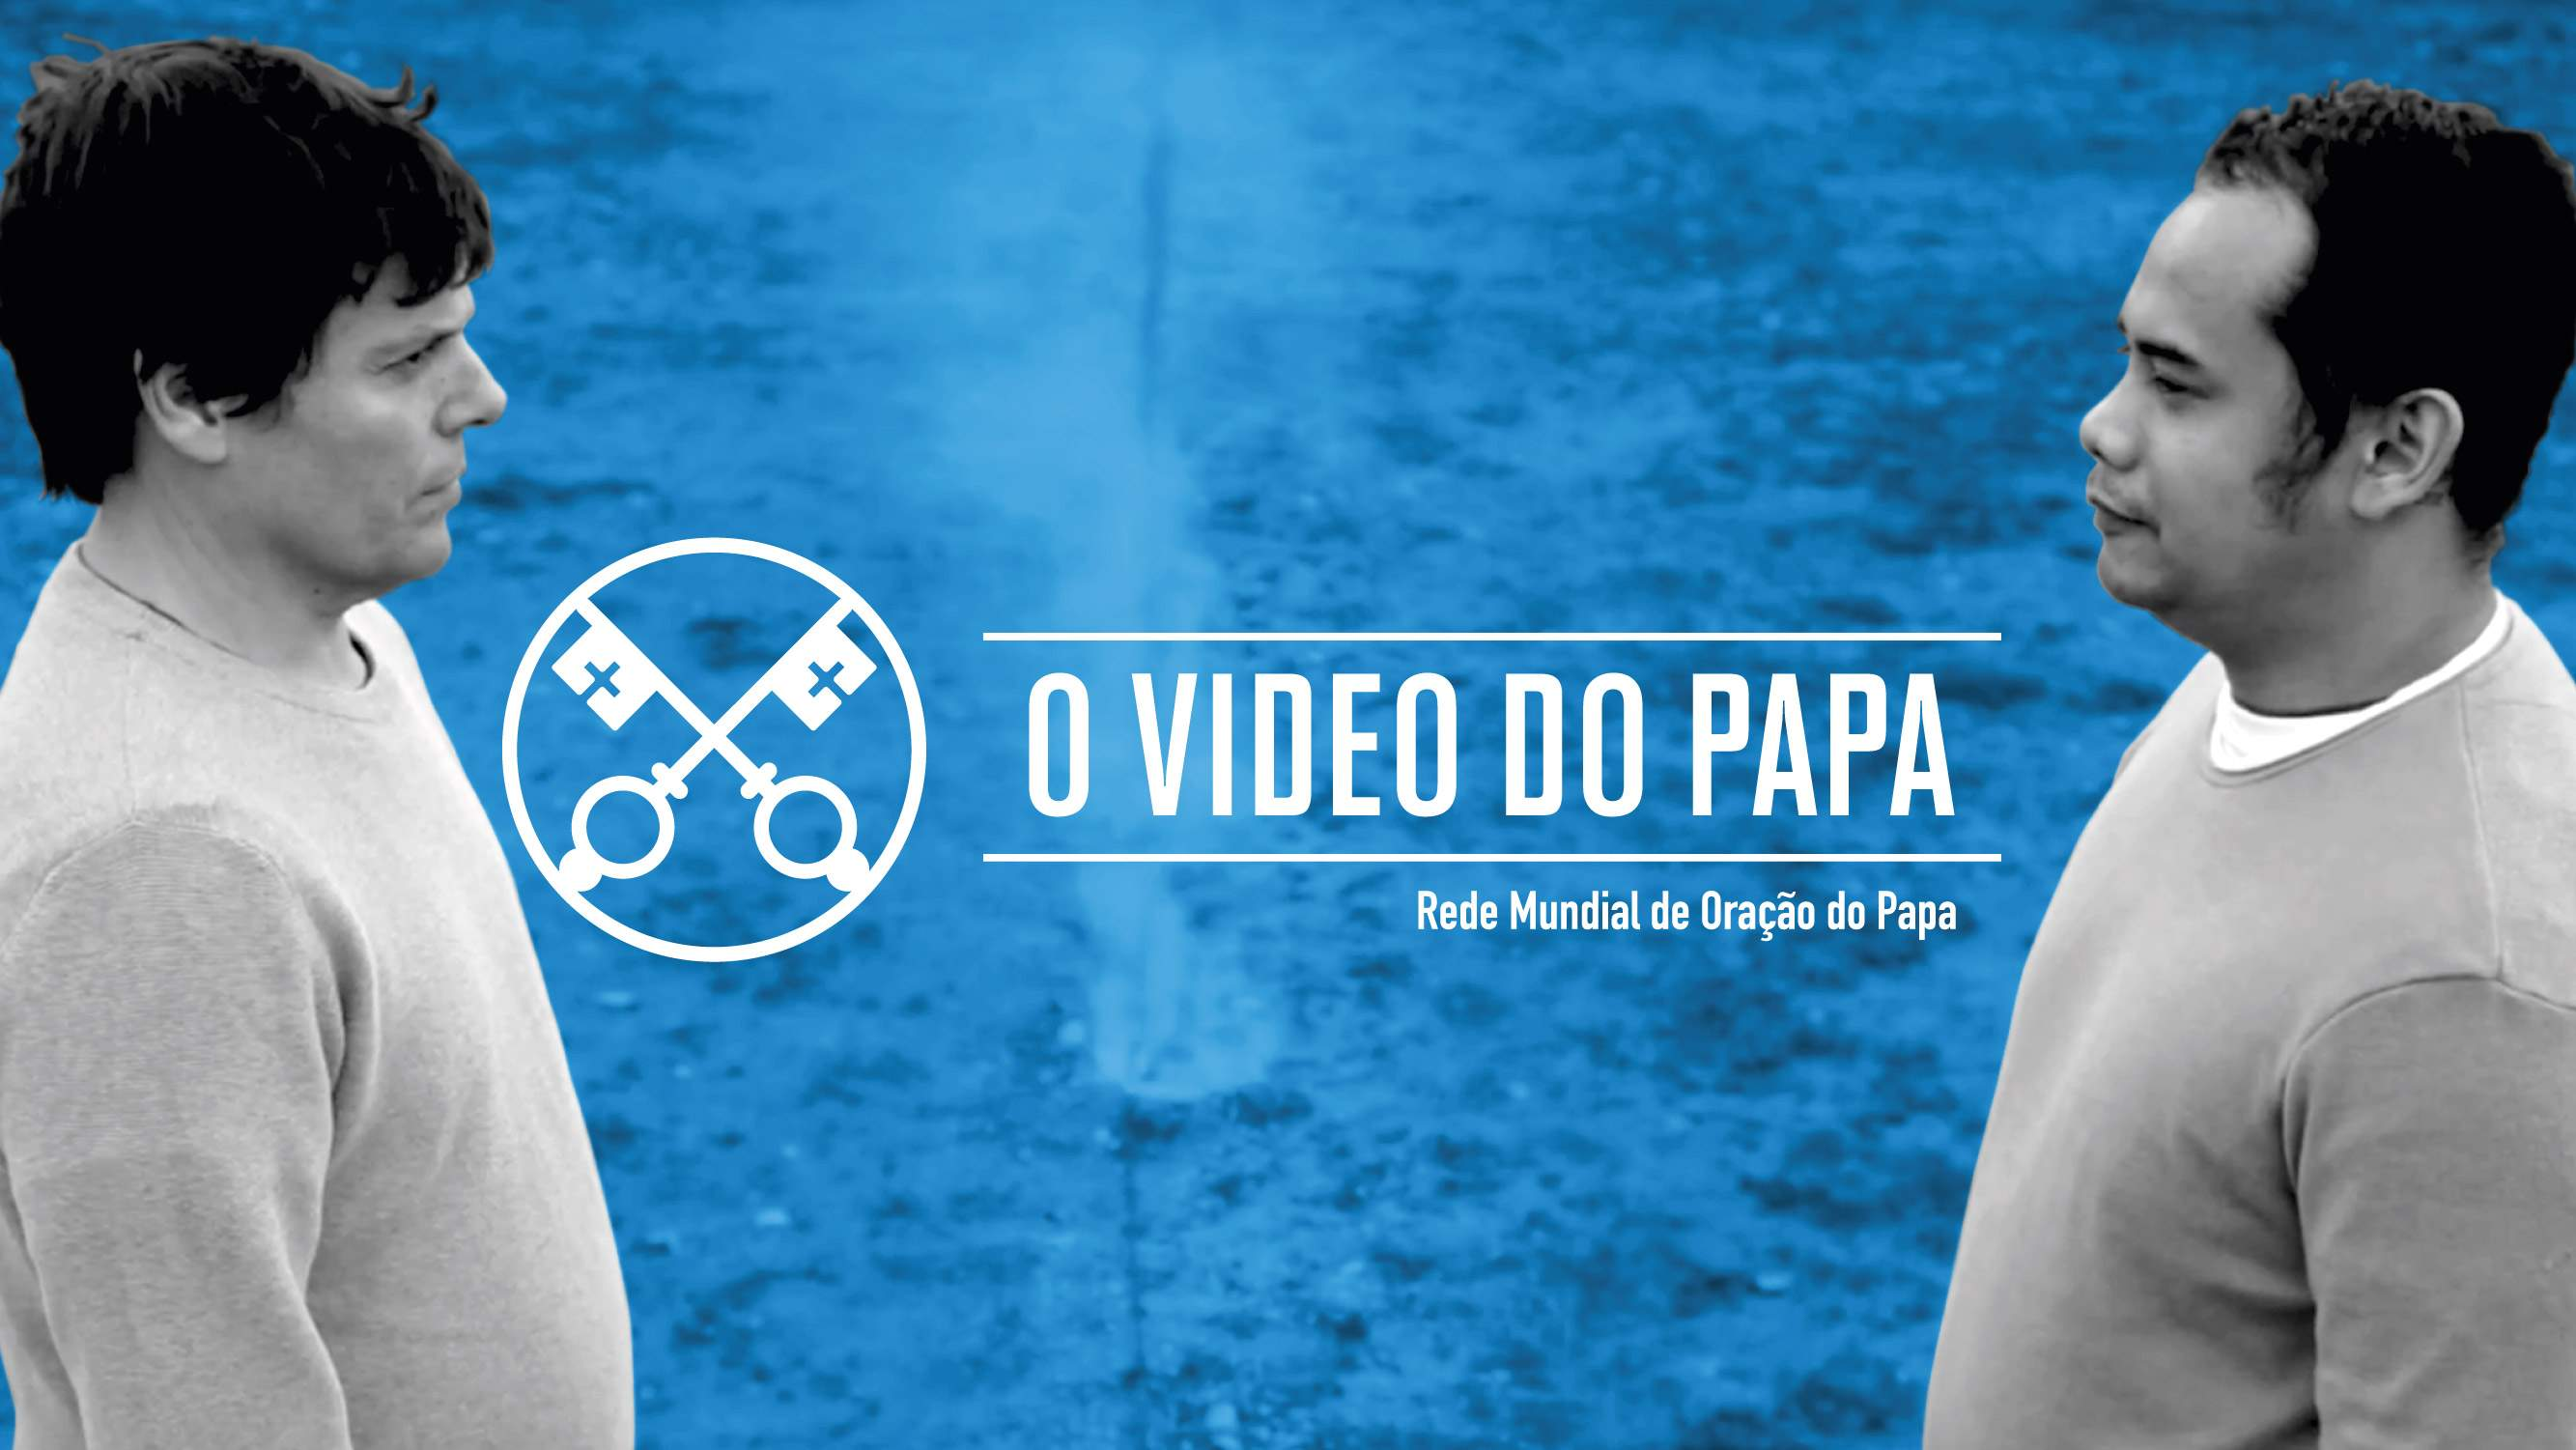 Official Image - TPV 1 2020 PT - O Video do Papa - Promoção da paz no mundo